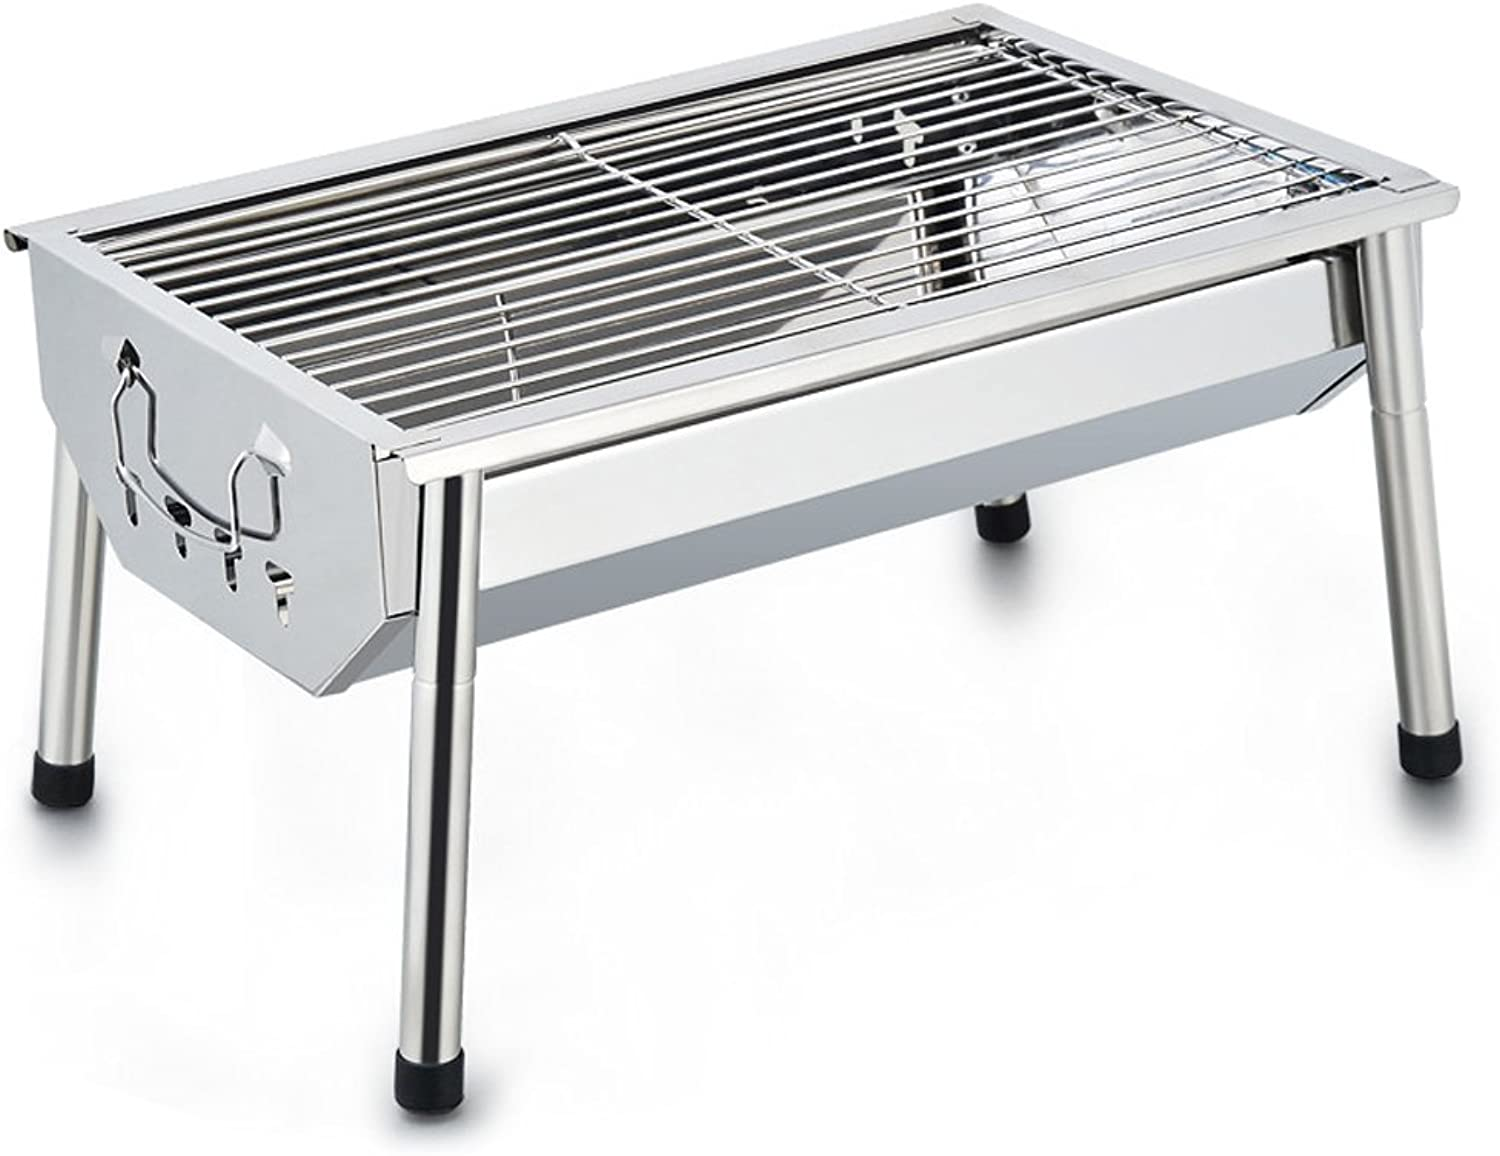 Grill BBQ Outdoor Stainless Steel Charcoal Removable Mobile Convenience Travel Party 35 People